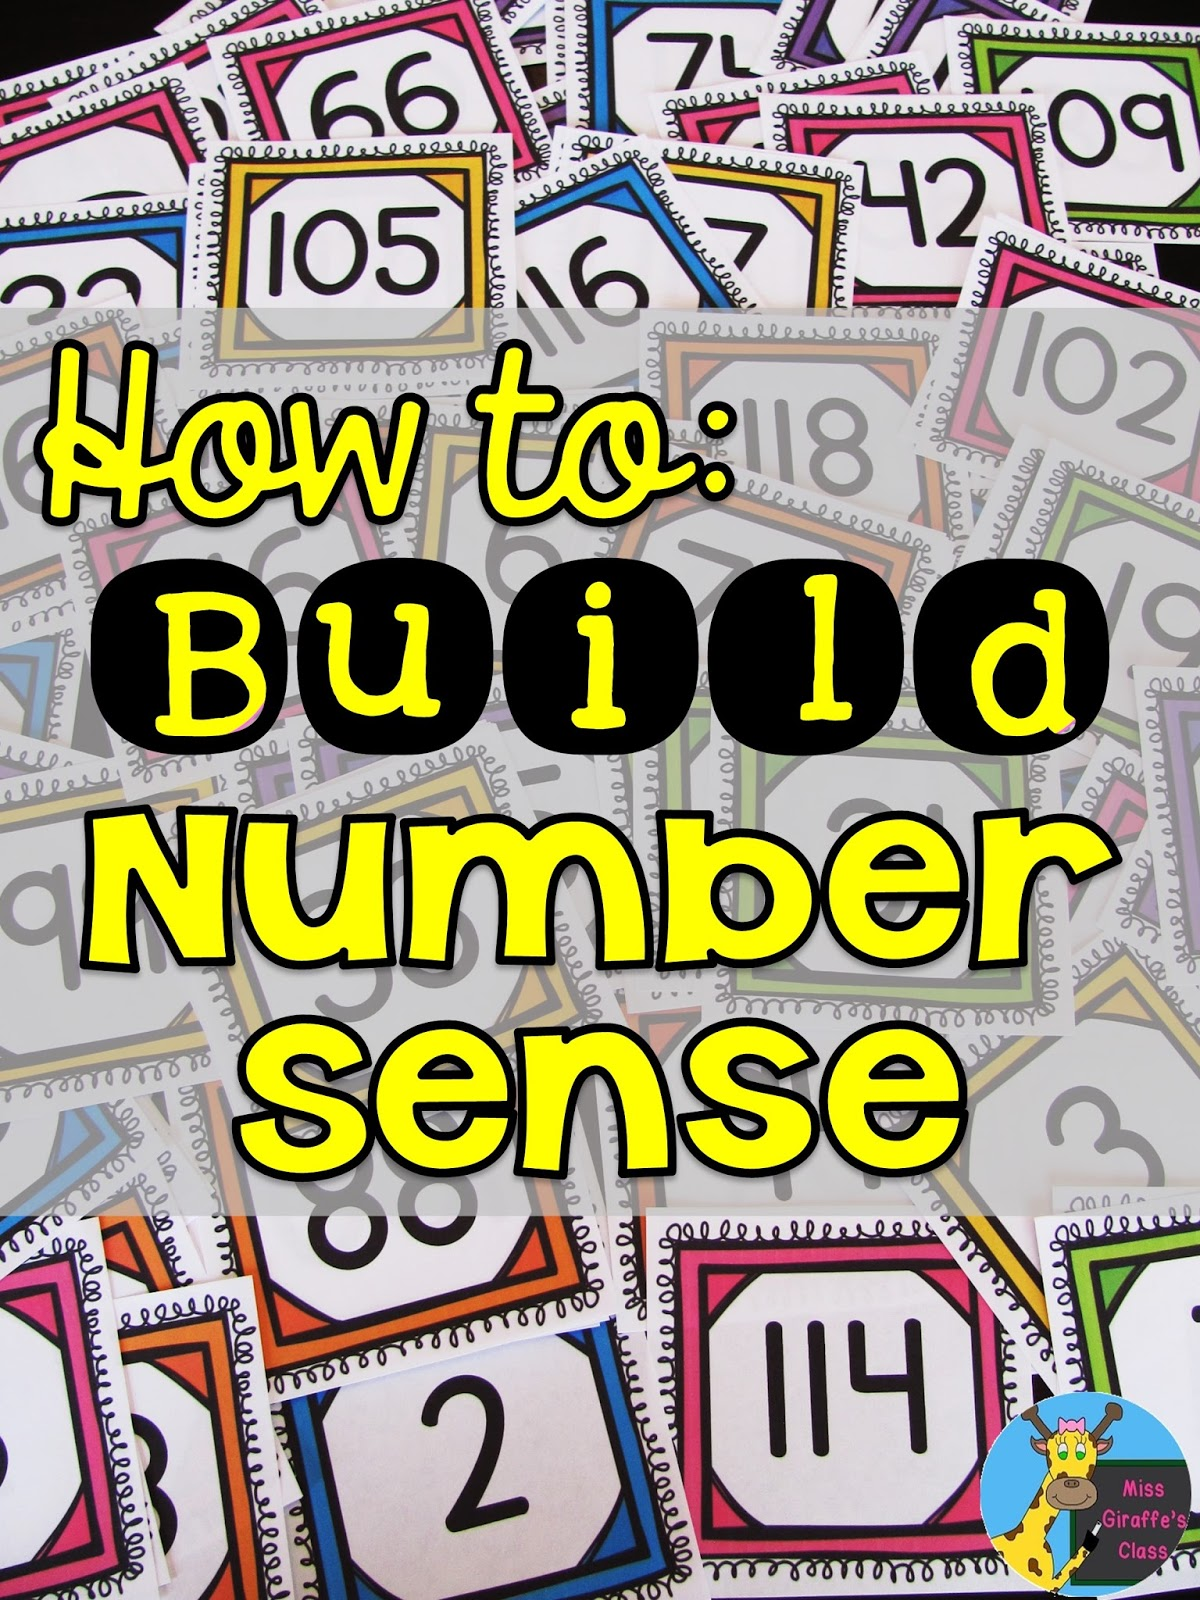 medium resolution of Miss Giraffe's Class: Building Number Sense in First Grade